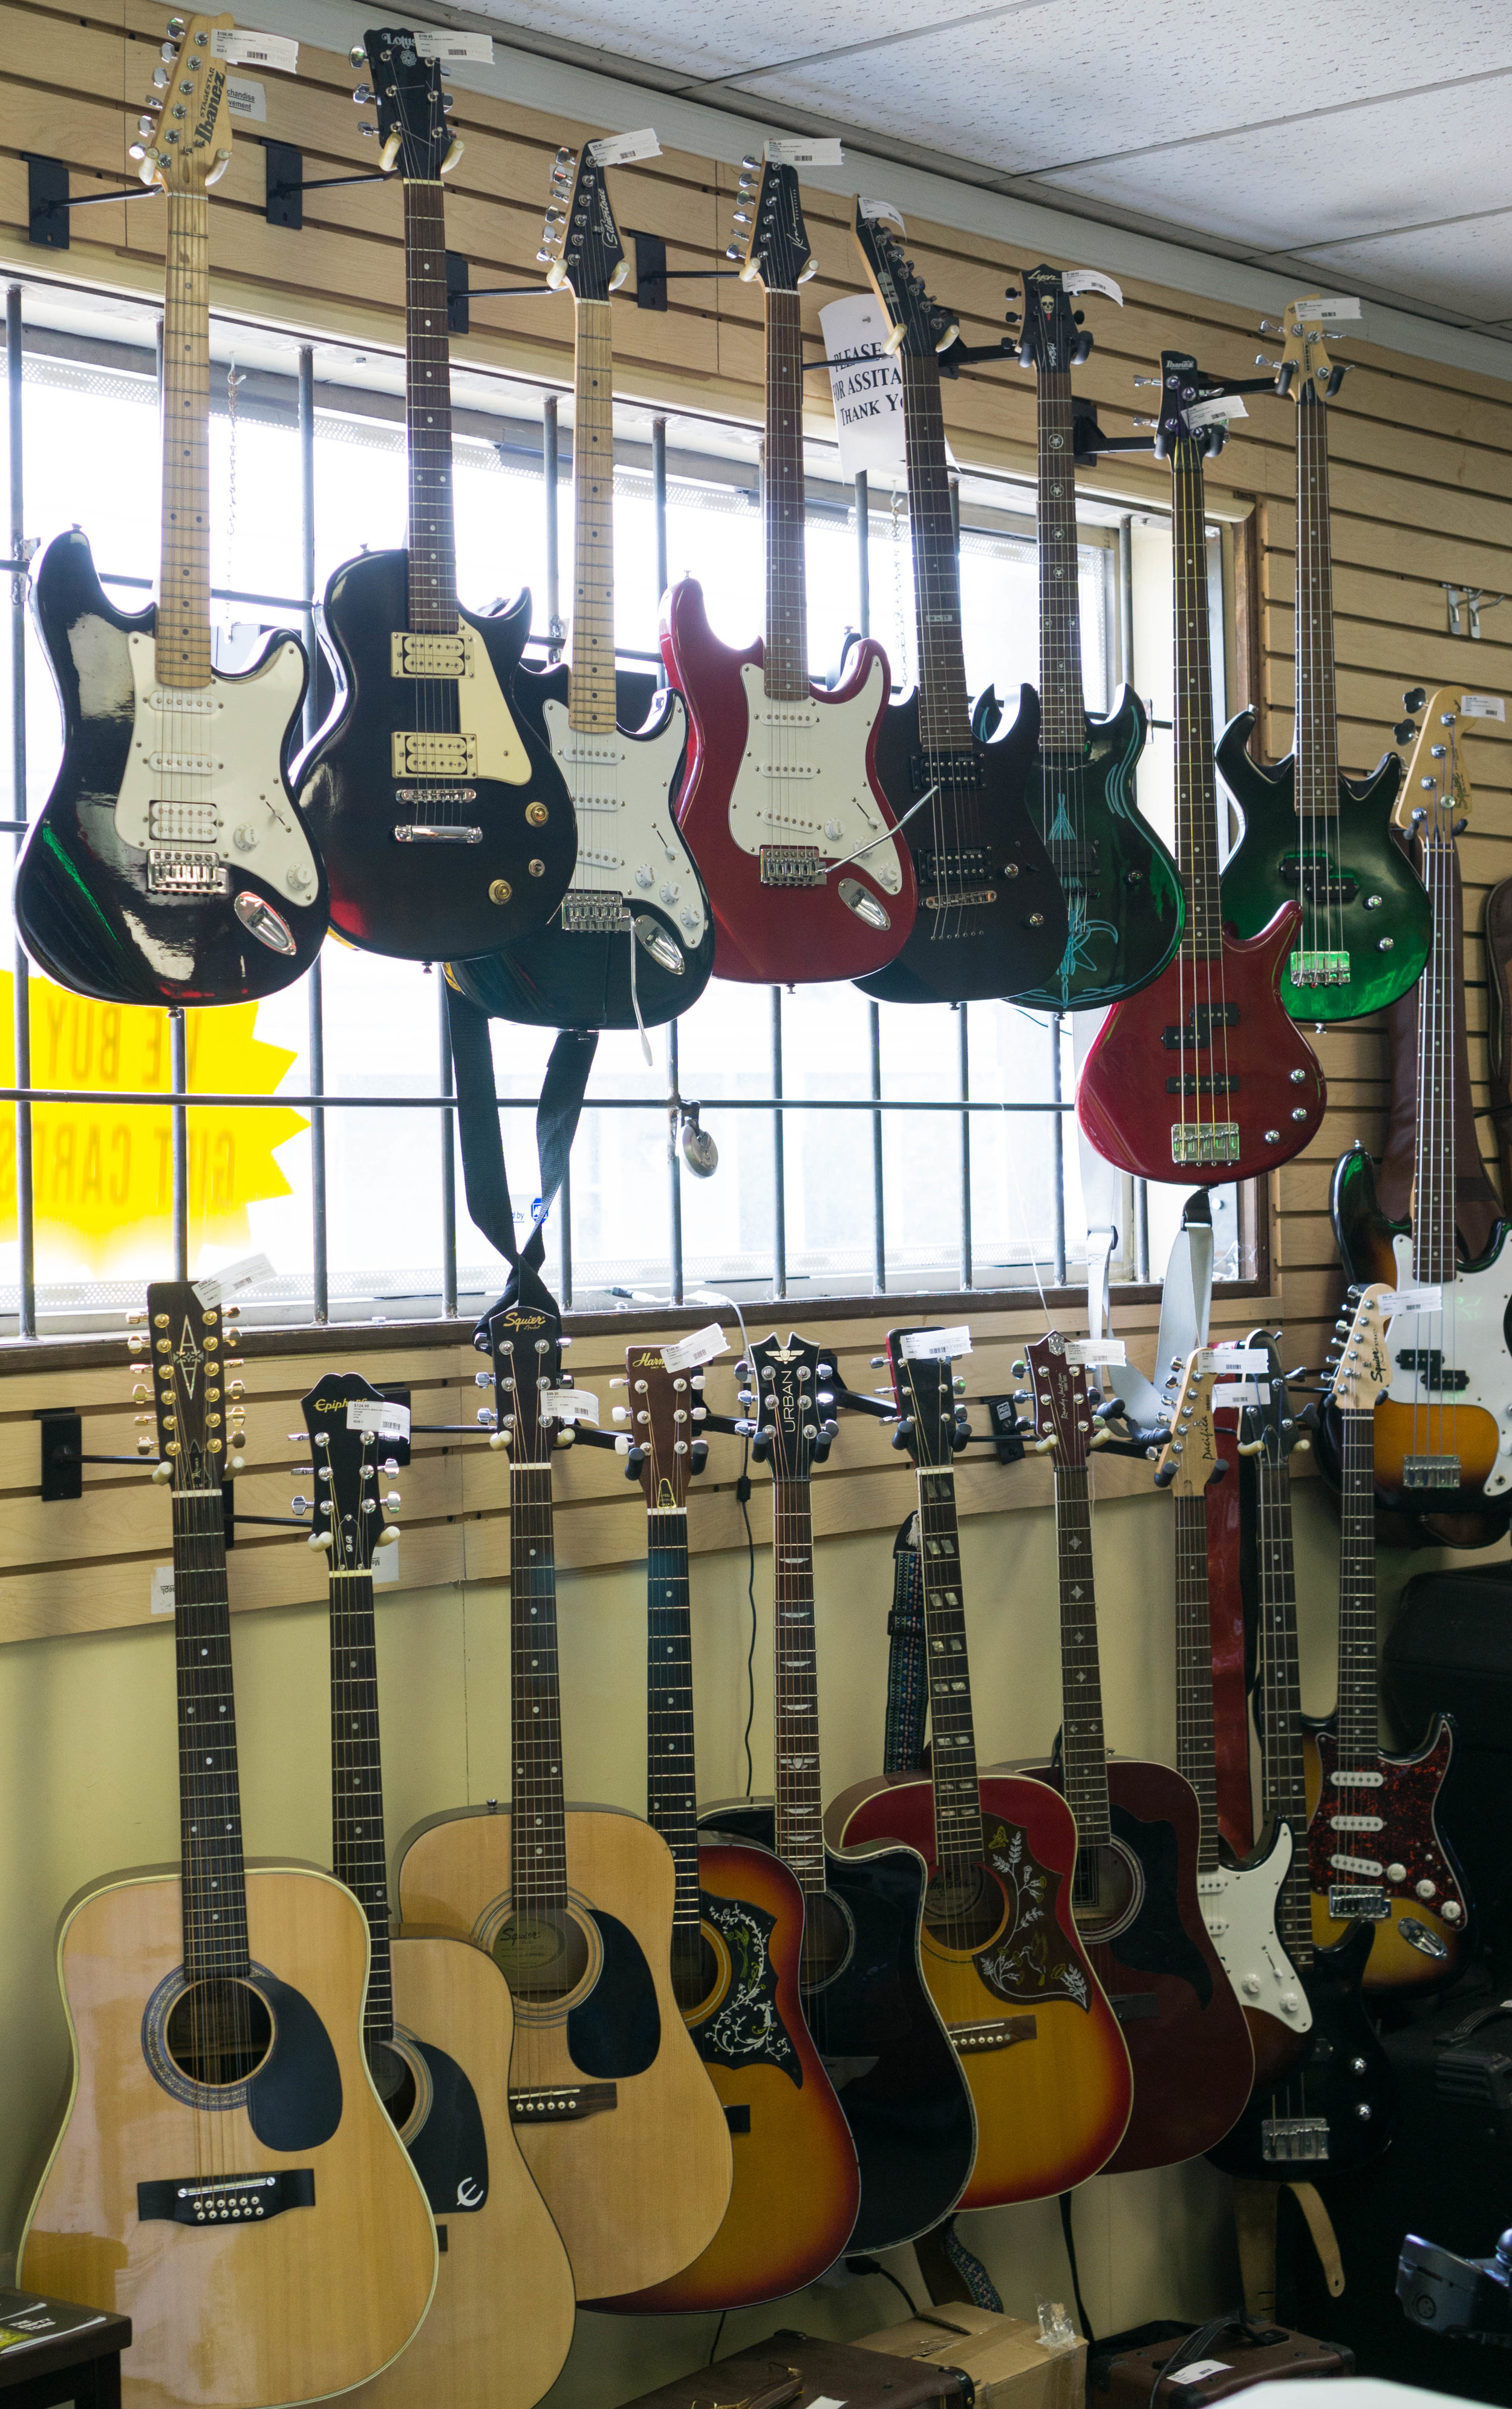 Guitars and Instruments!